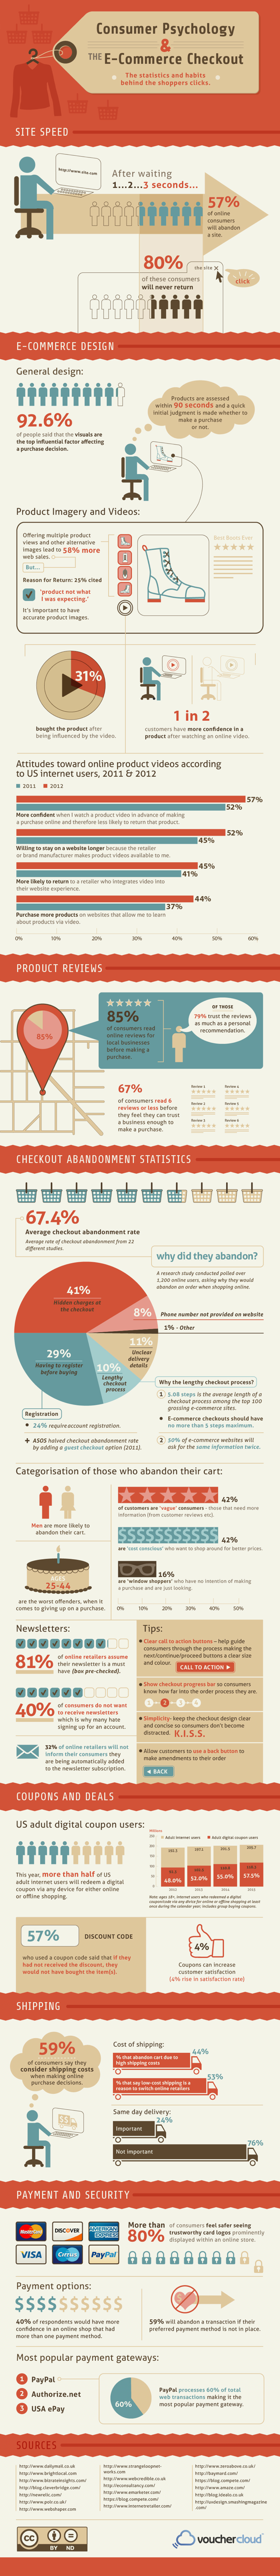 Consumer Psychology and The Ecommerce Checkout-Stats Behind the Clicks [Infographic]